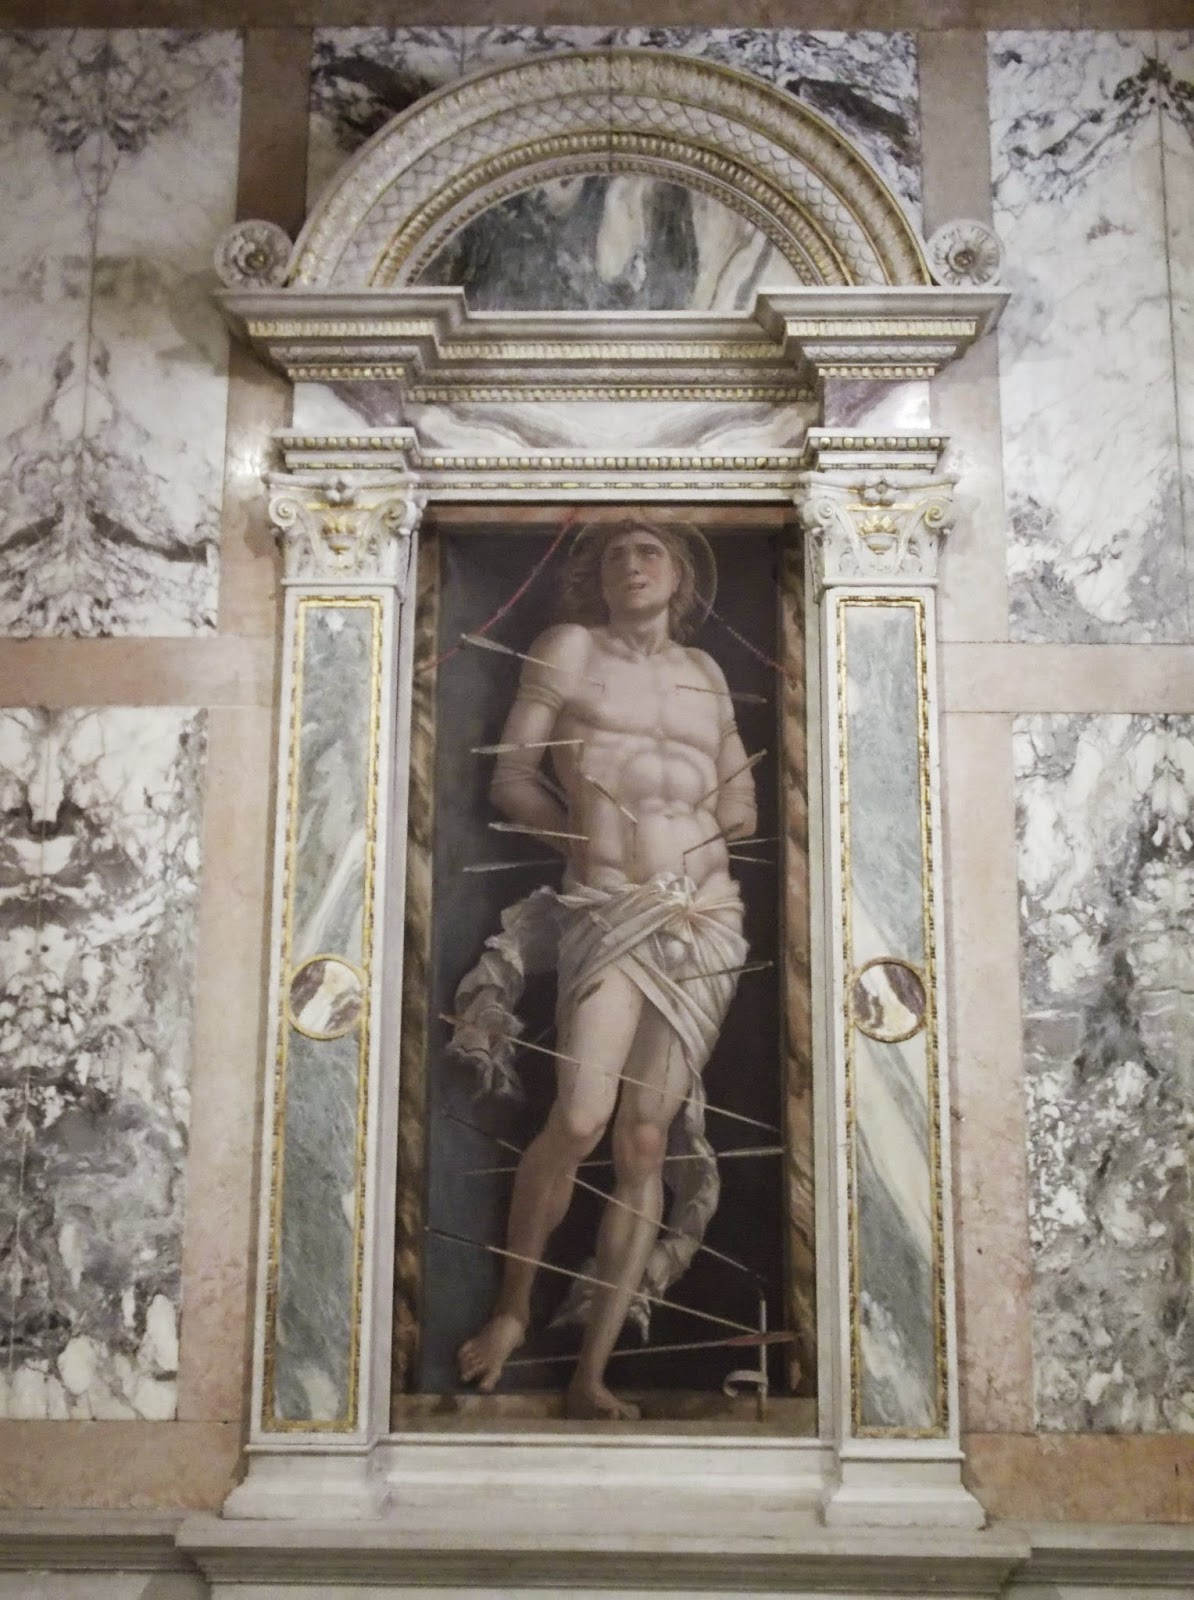 The painting of Saint Sebastian by Mantegna in the Ca' d'Oro, Venice.